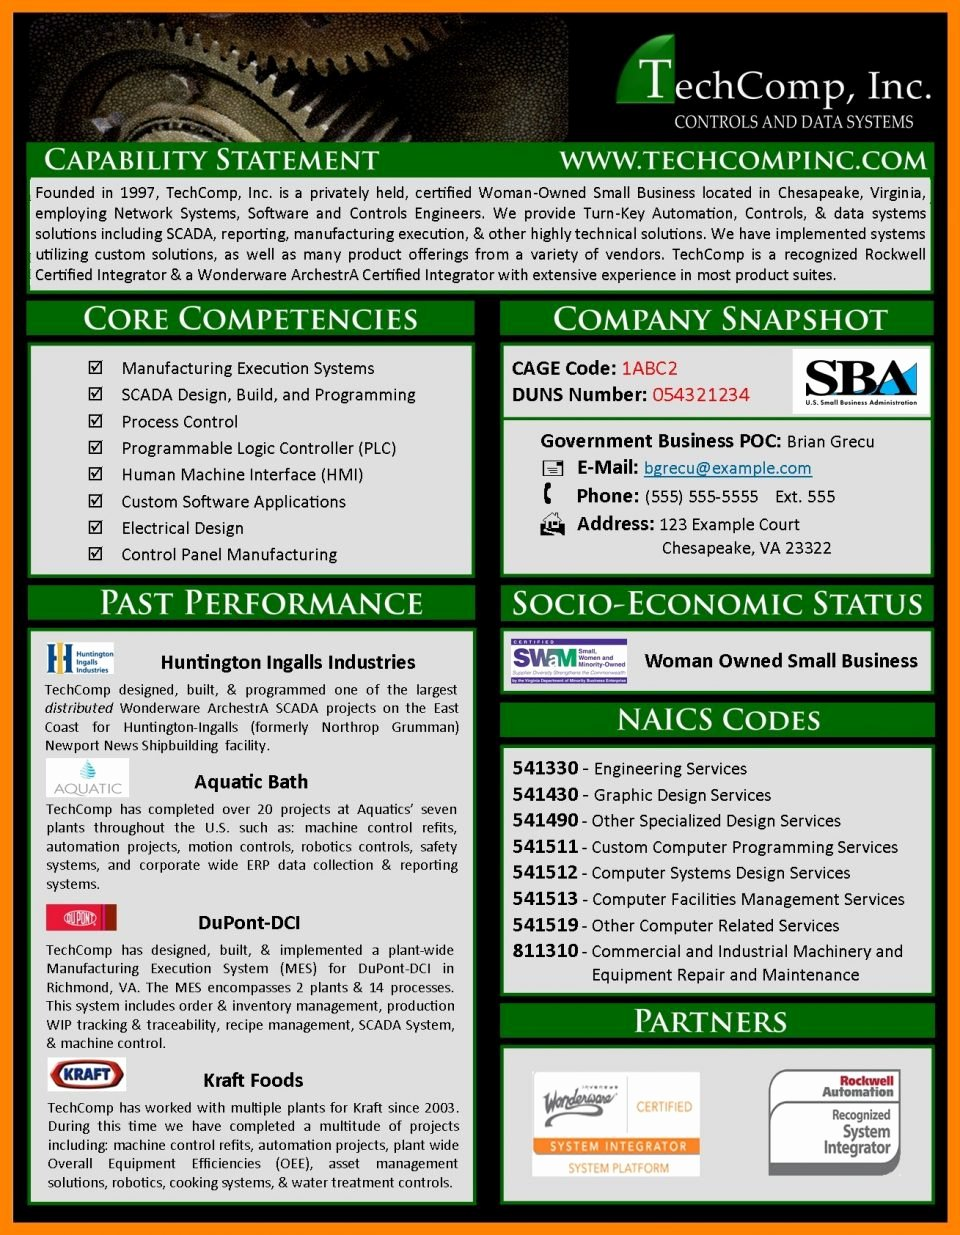 Capability Statement Template Word Awesome Free Capability Statement Template Australia format Design